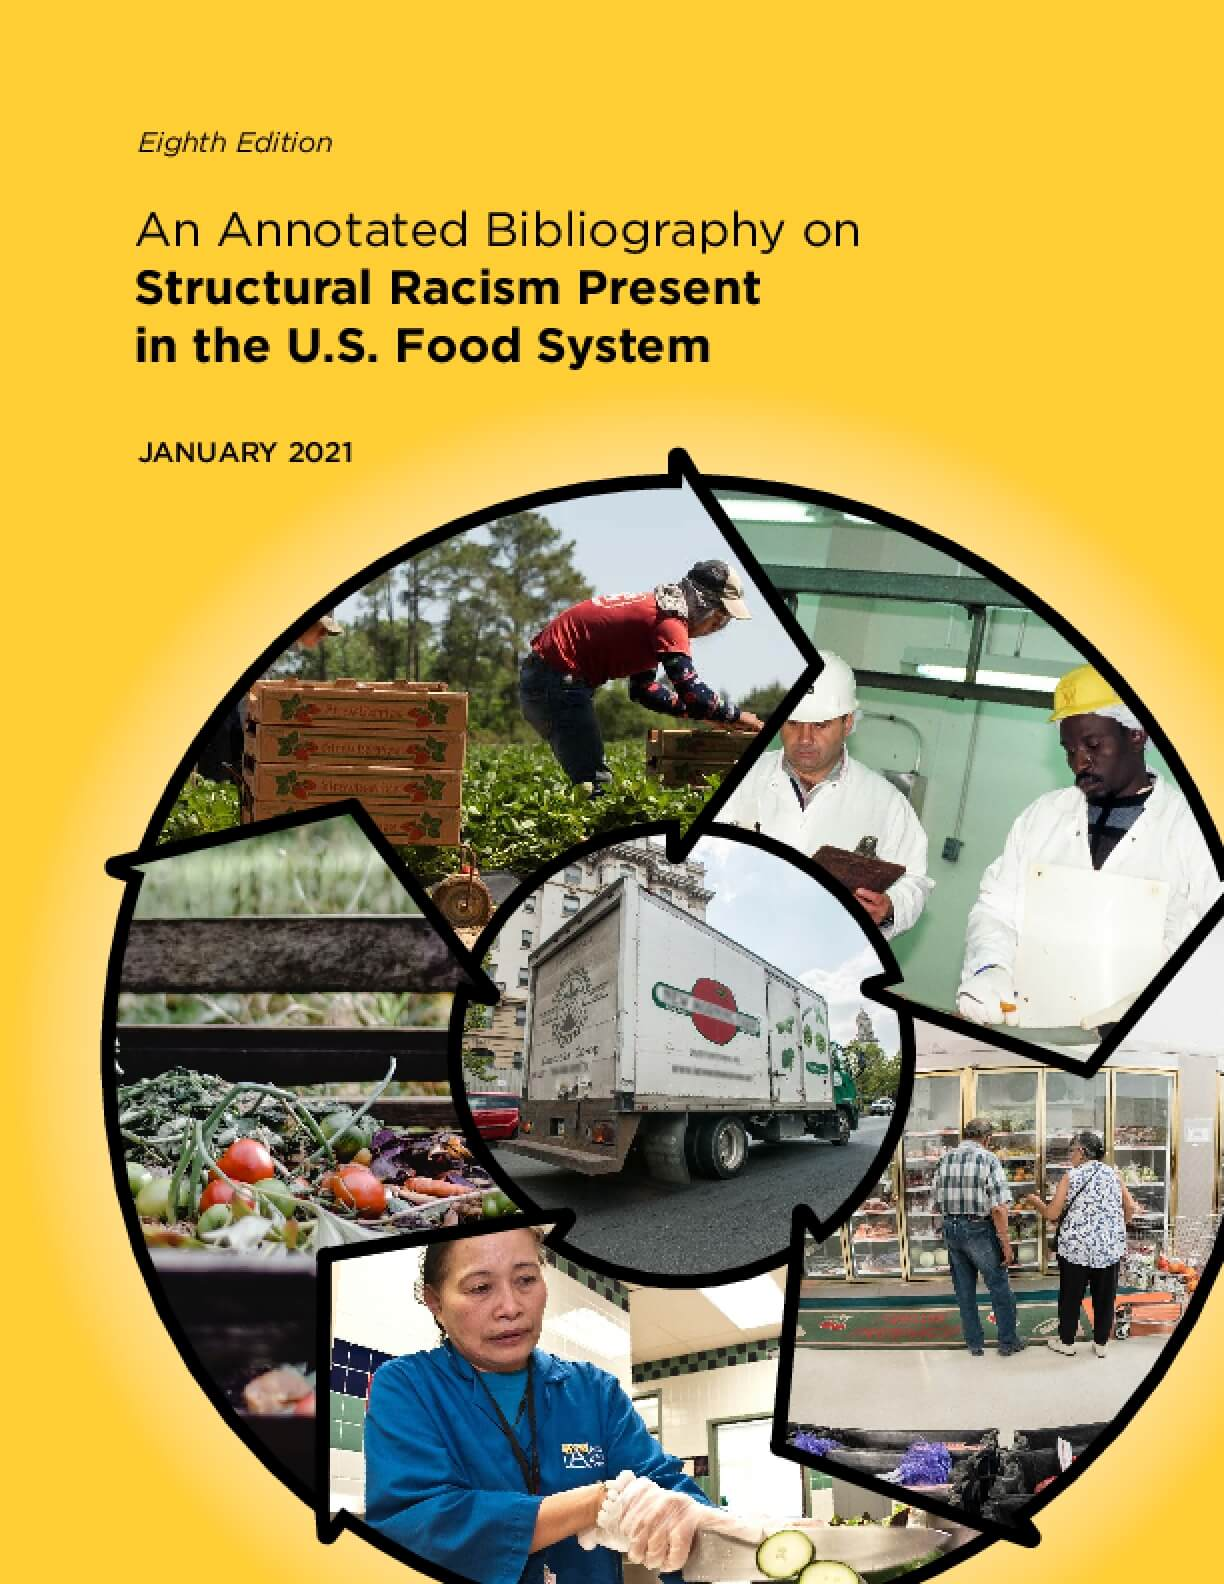 An Annotated Bibliography on Structural Racism Present in the U.S. Food System, Seventh Edition